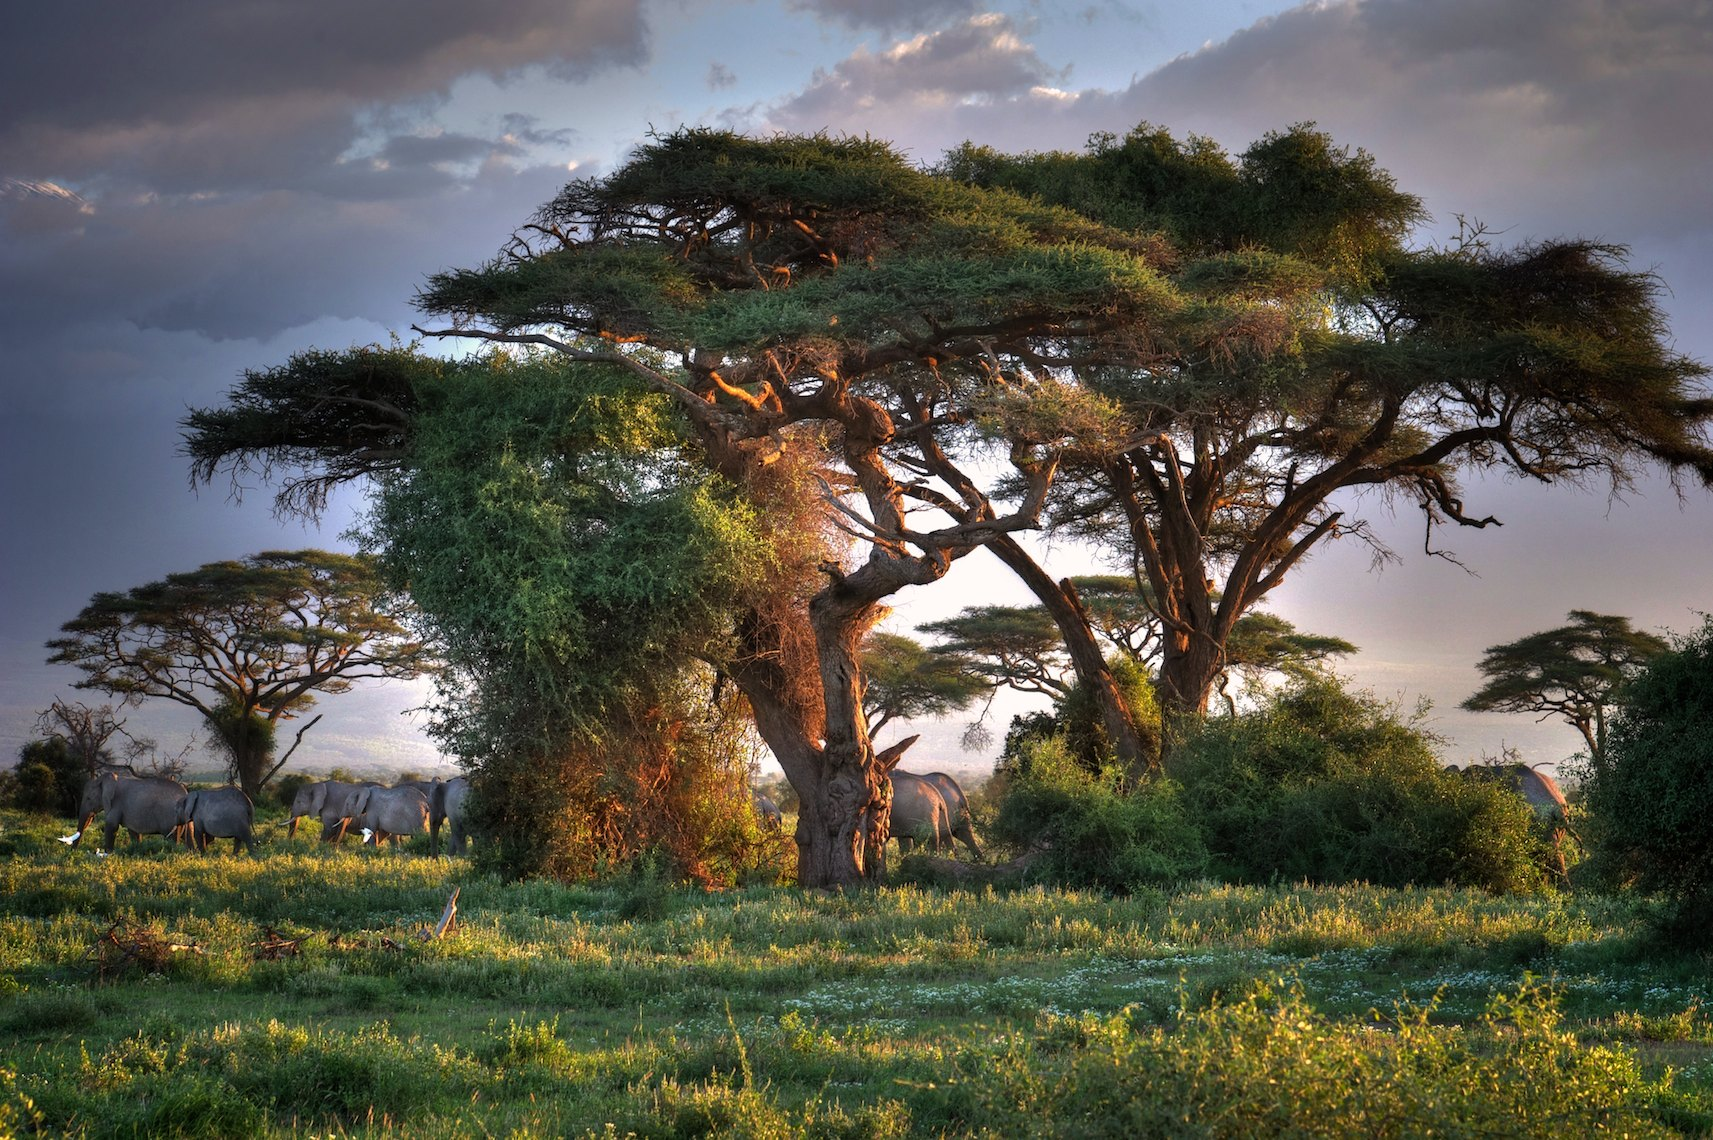 Kenya Amboseli tree elephants HDR